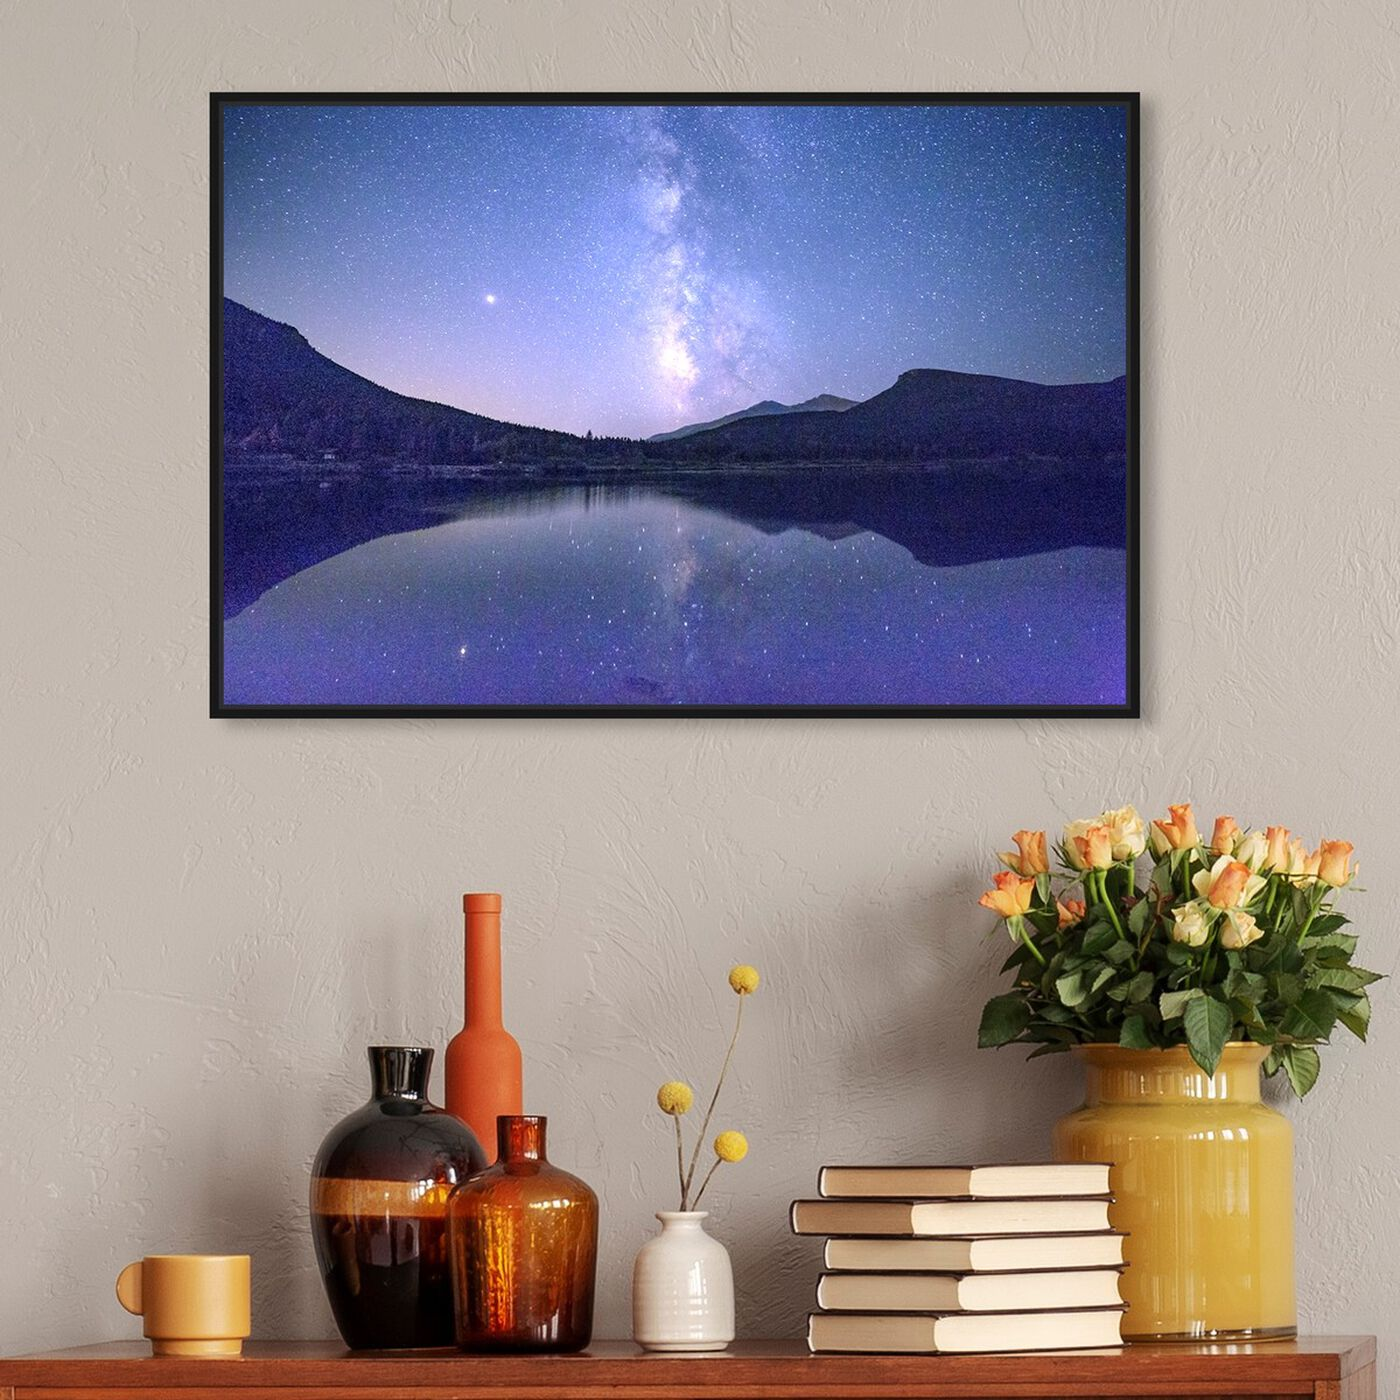 Hanging view of Curro Cardenal - Starry Night featuring nature and landscape and mountains art.